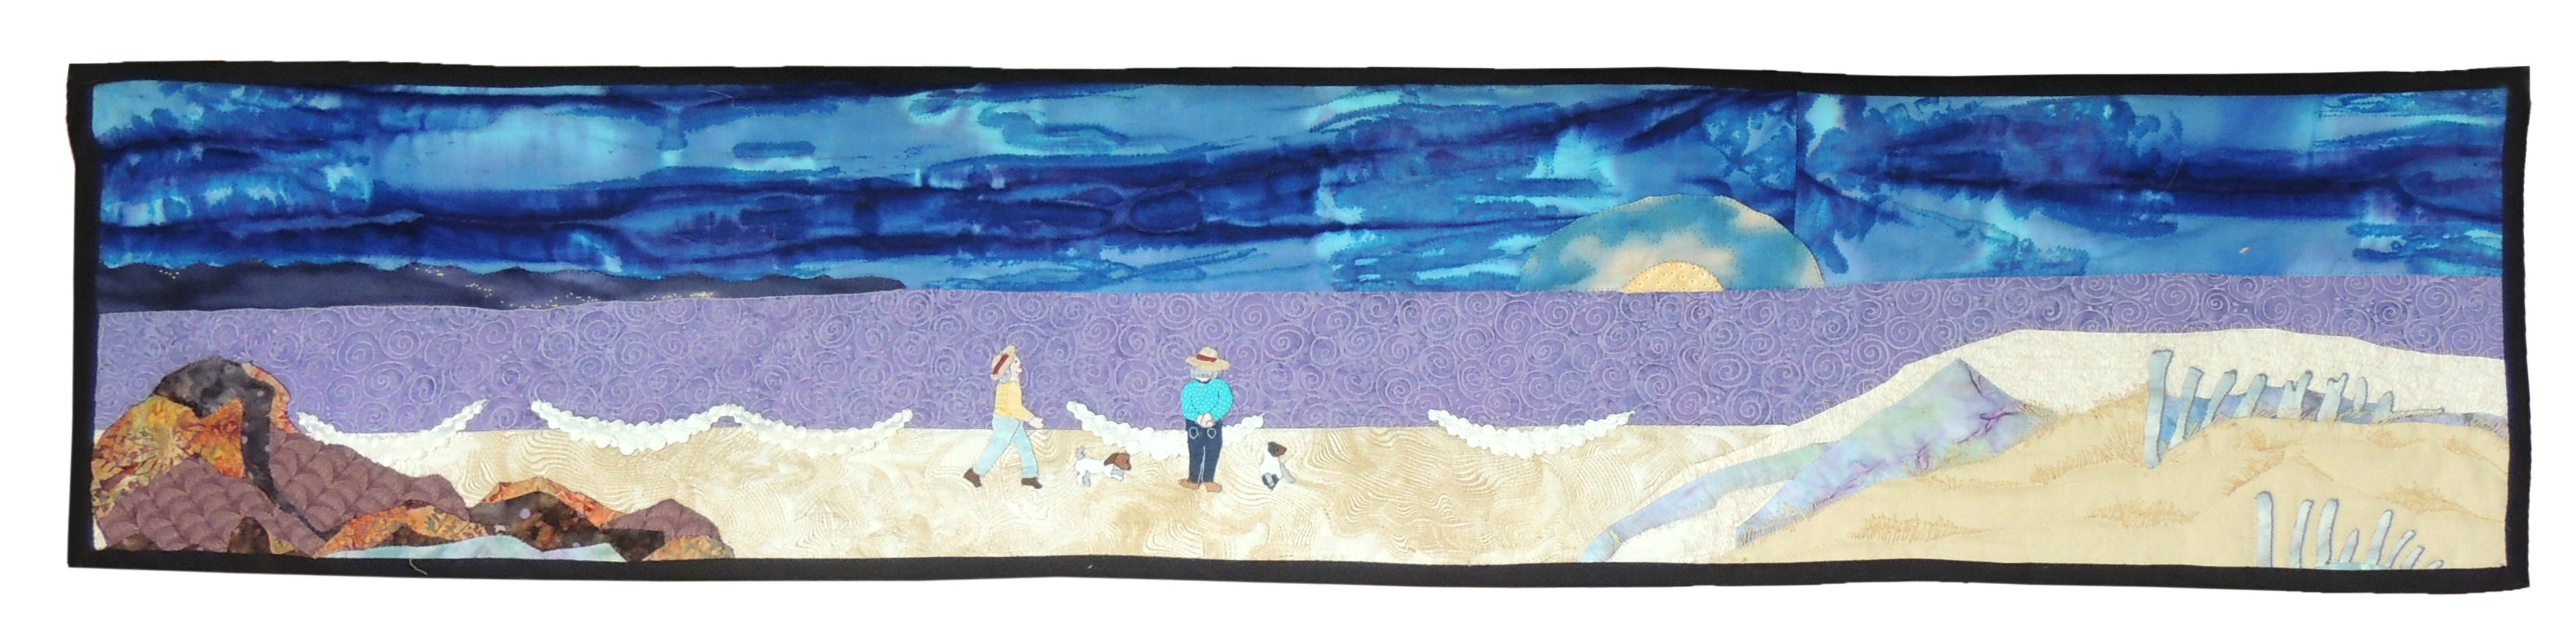 Marianne Rabb Britton | BEACH WITH JACK RUSSELLS | Fabric & Embroidery | 13.5 x 58"